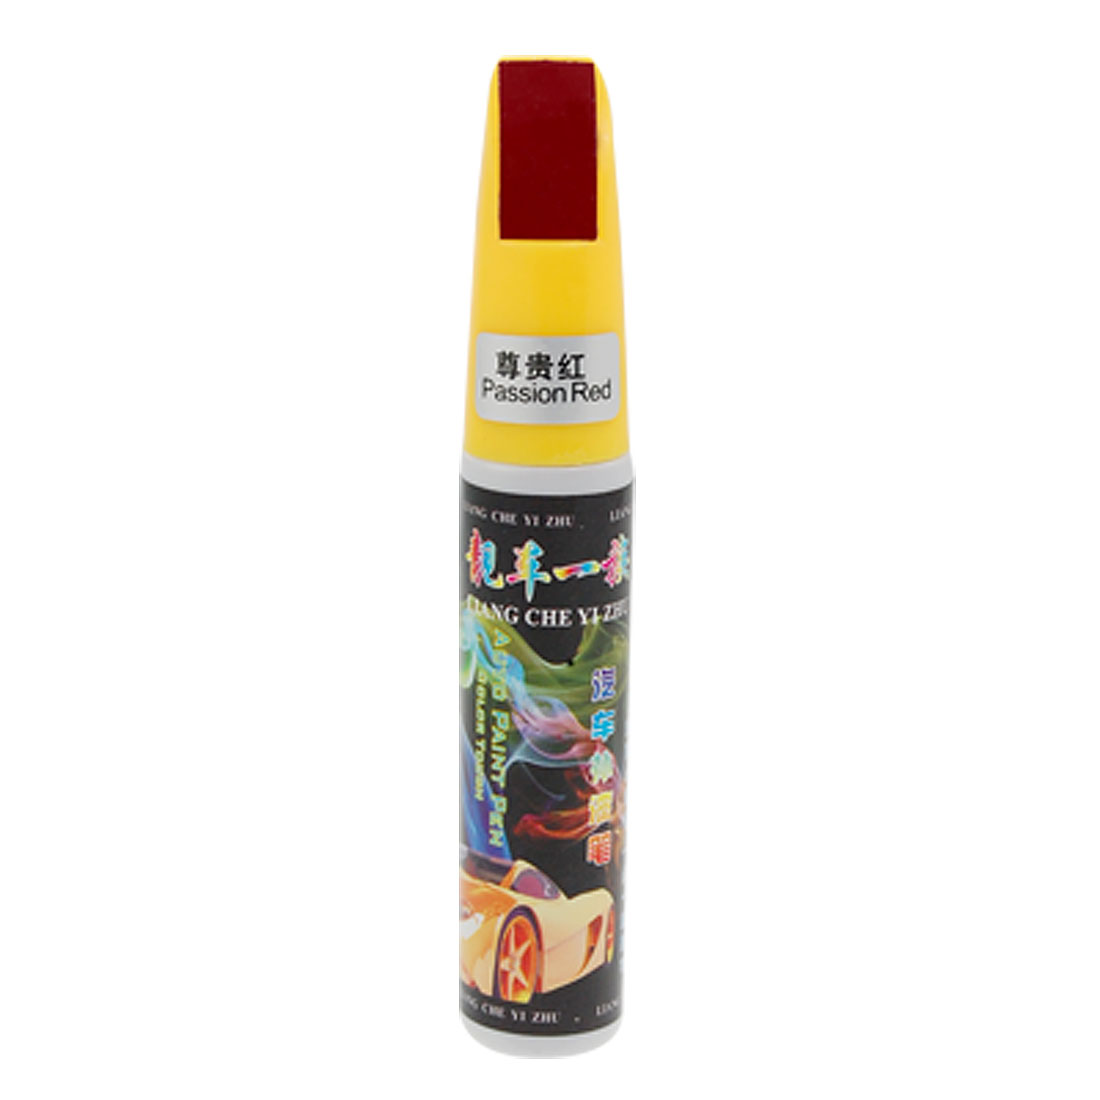 Auto Car 12ml Passion Red Scratches Repair Touch Up Fill Paints Pen